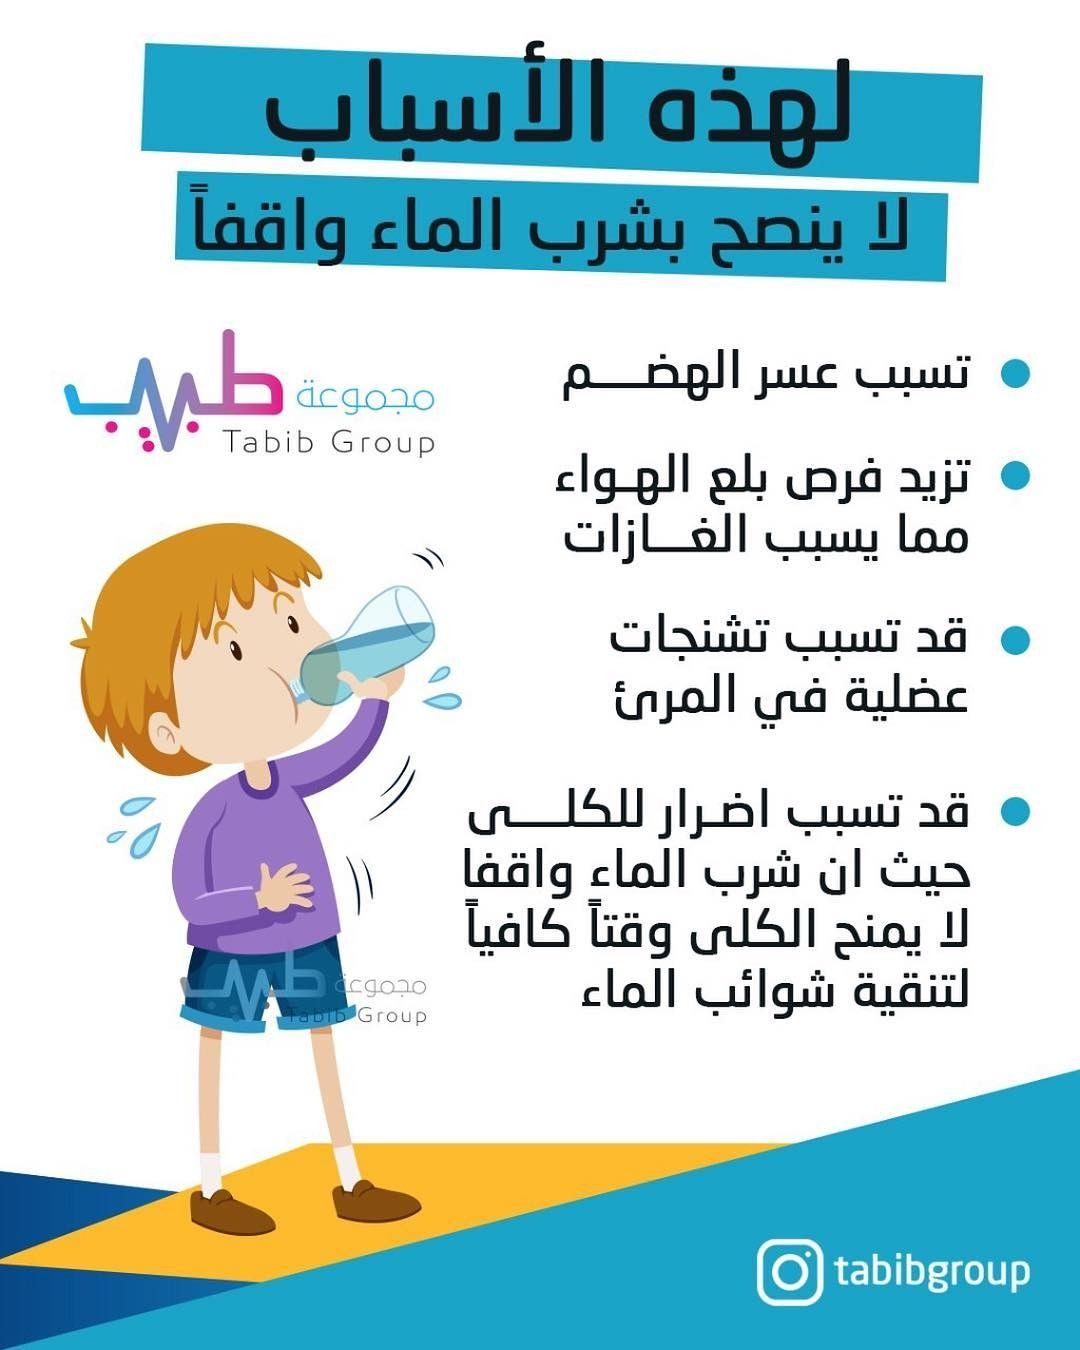 Pin By Ali Alsuraifi On معلومات Information Health Fitness Nutrition Health And Beauty Health